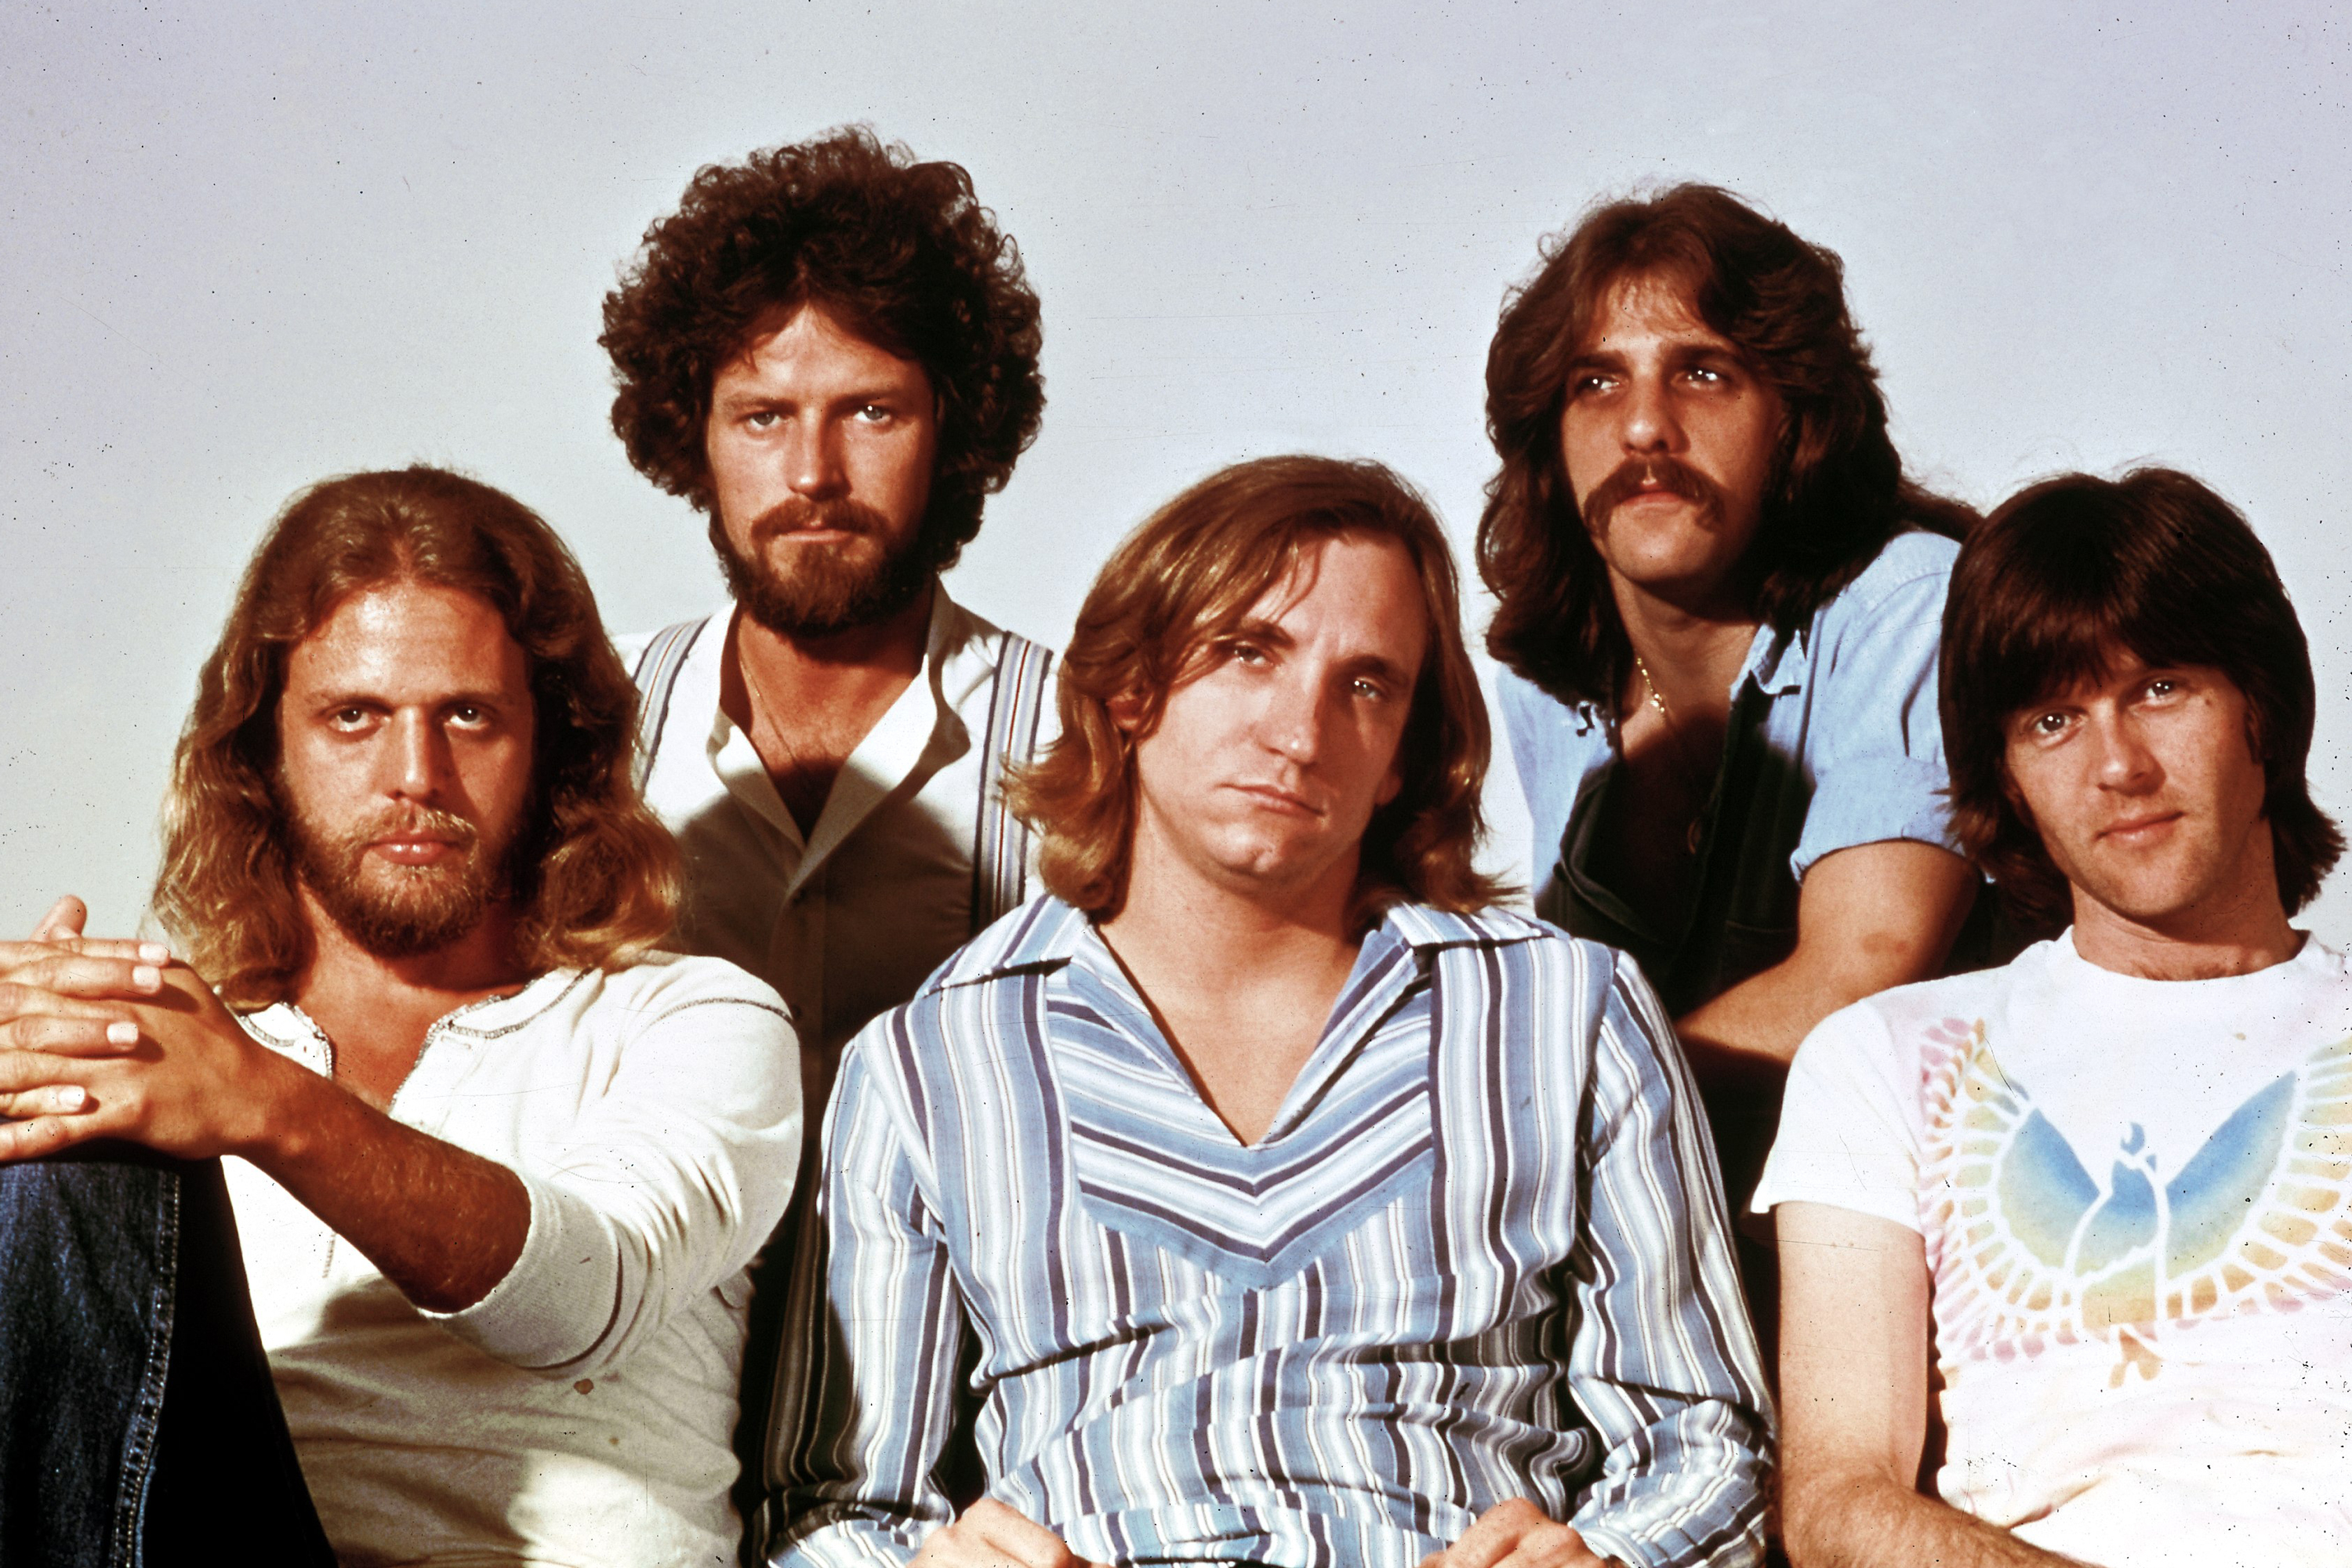 Greatest Eagles Songs: Beyond 'Hotel California' - Rolling Stone